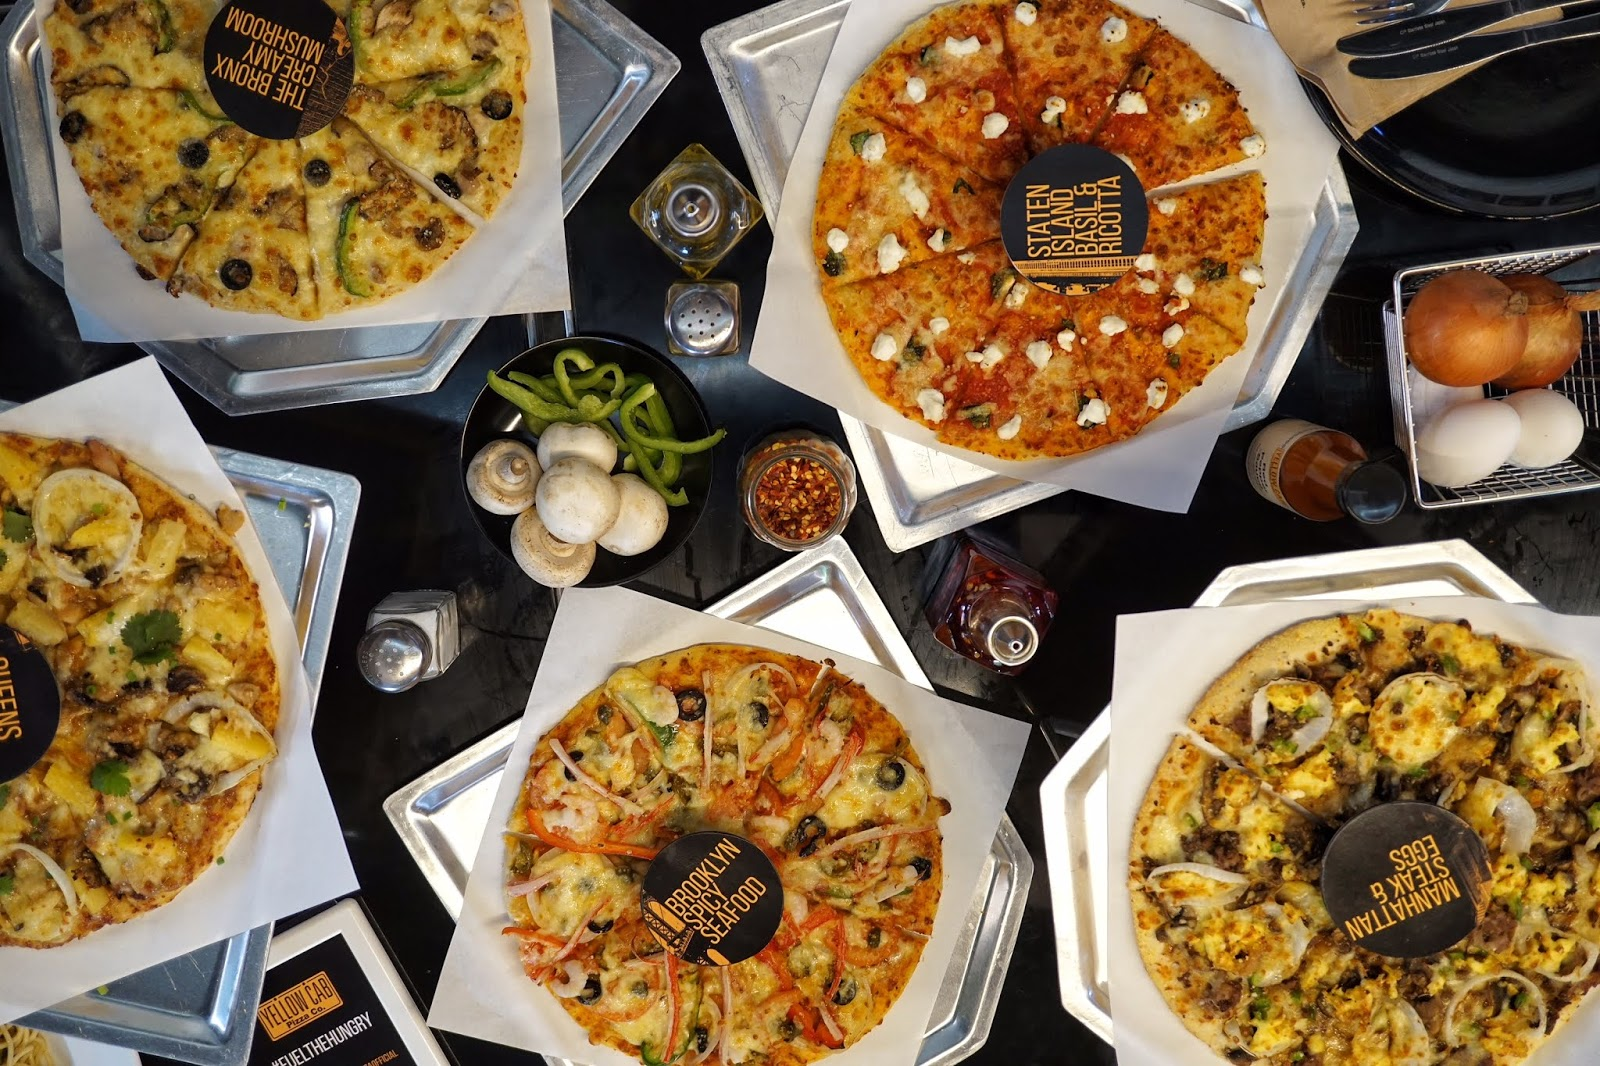 Yellow Cab Launched Five New Mouthwatering Flavors Last September 5 To Add To Its Roster Of Amazing Pizzas Highlighting The Essence Of New Yorks Famed